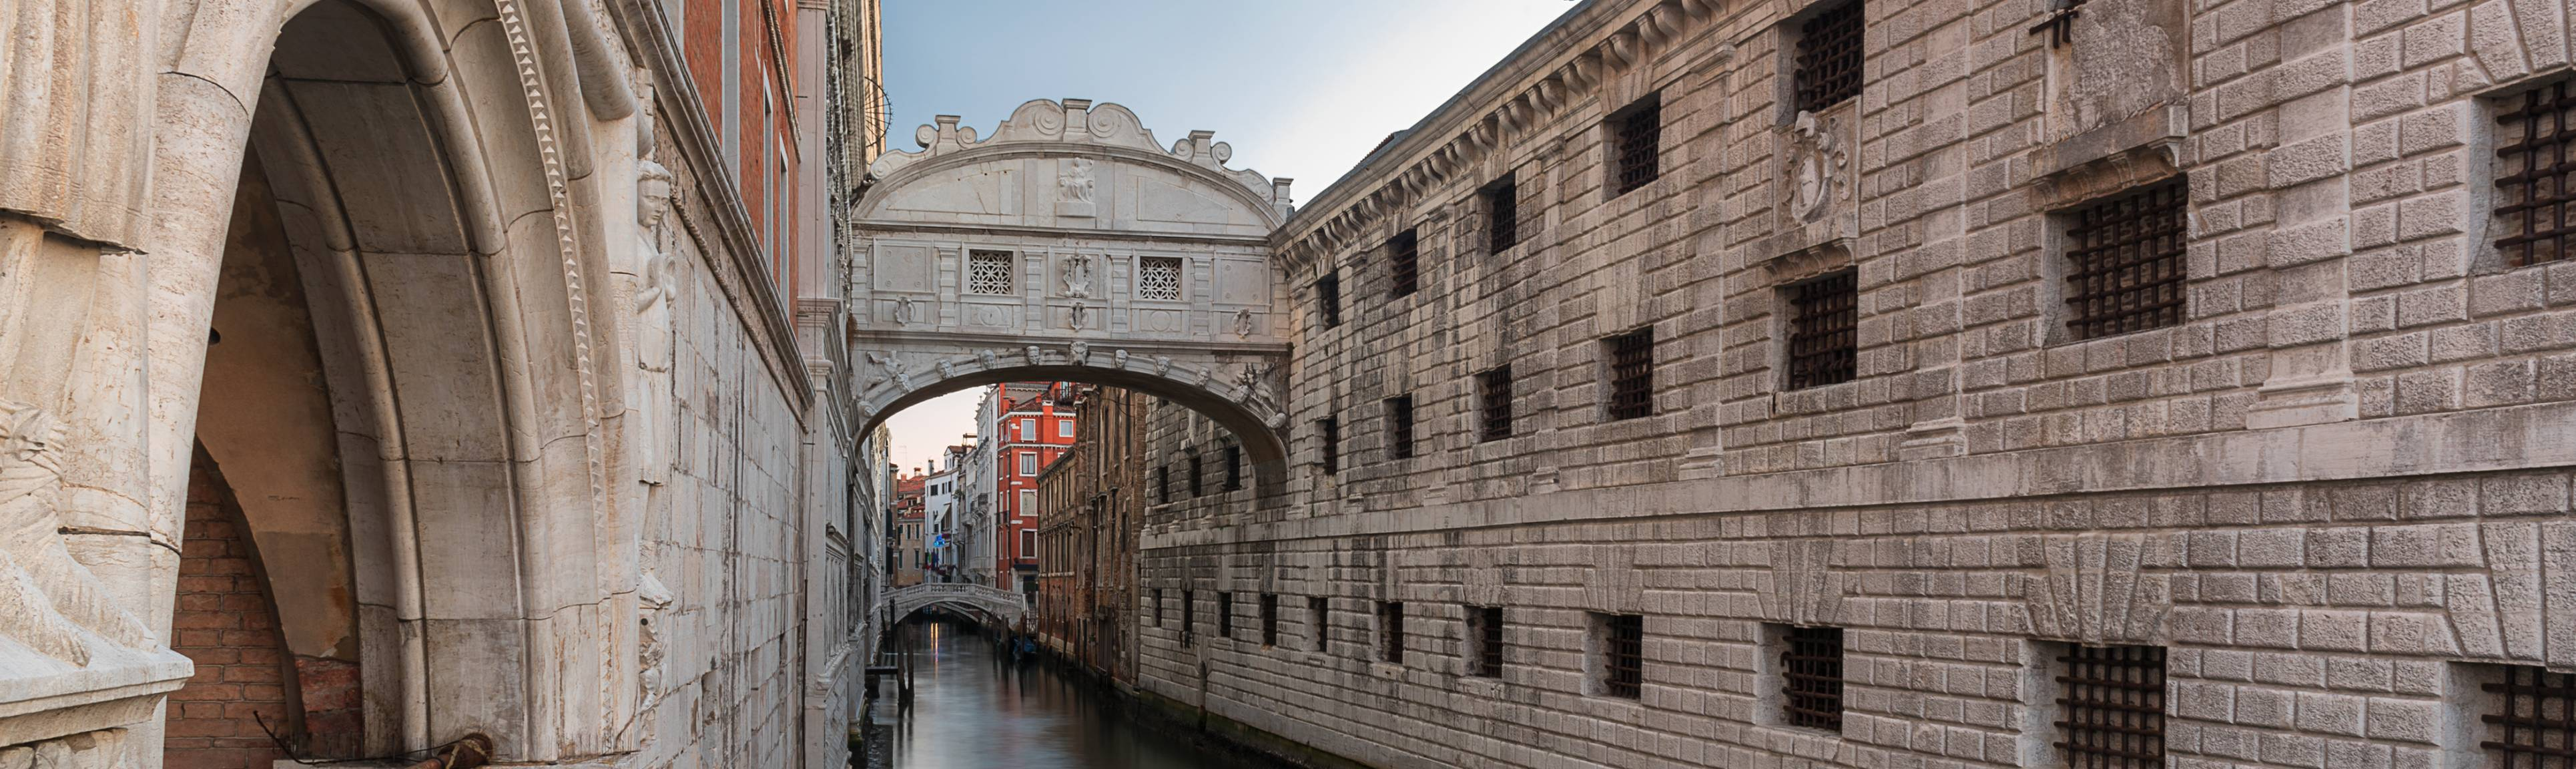 The Bridge of Sighs hangs from third story above Venice's canal.